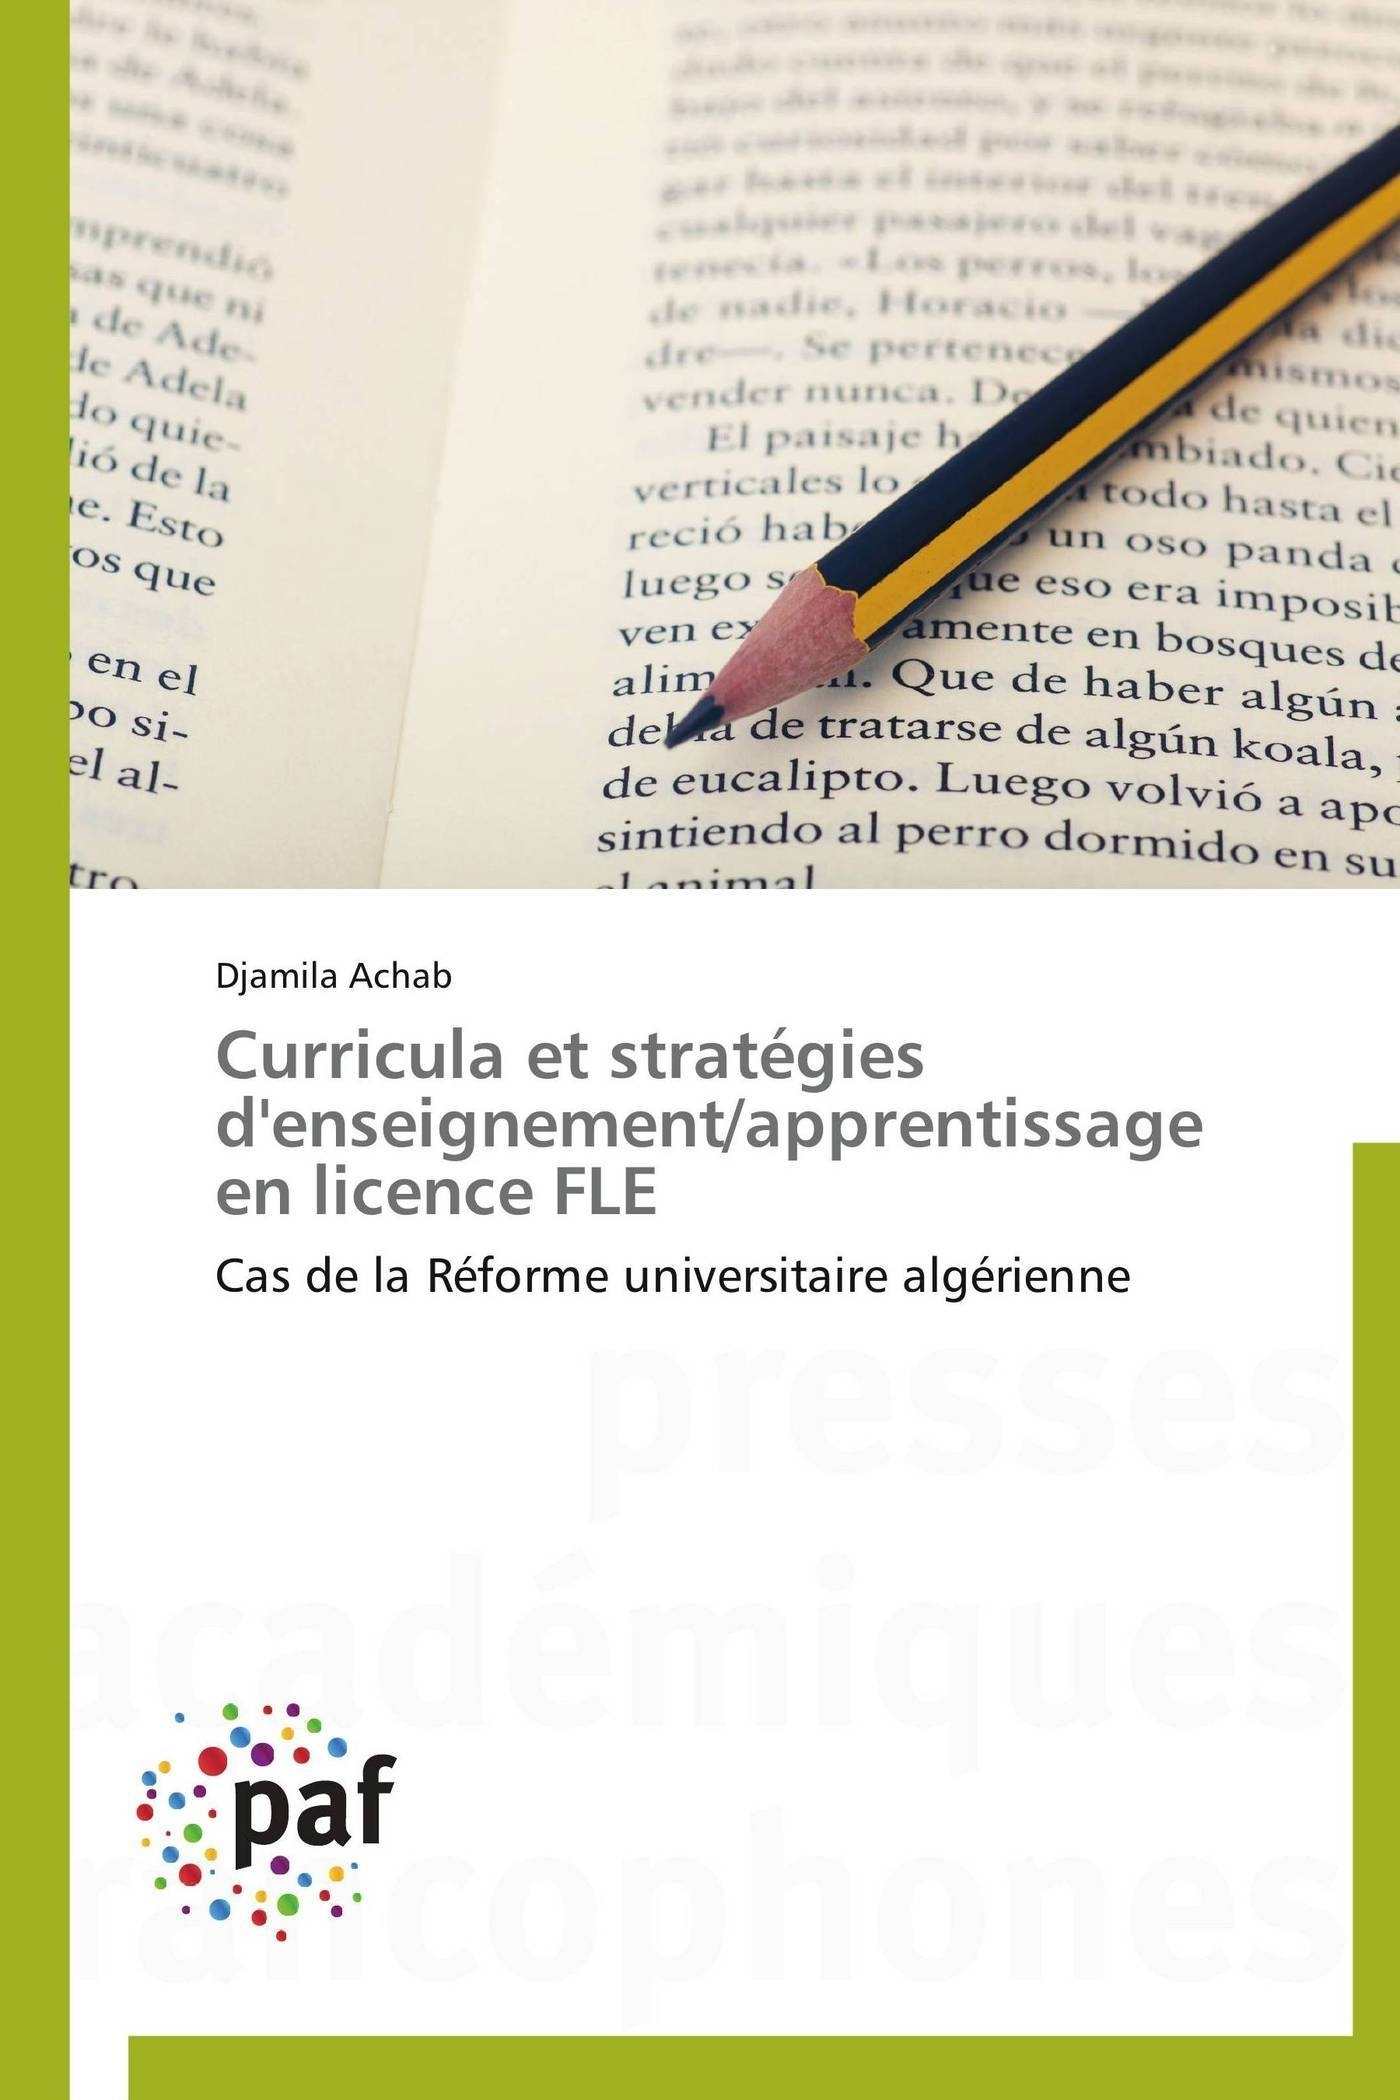 CURRICULA ET STRATEGIES D'ENSEIGNEMENT/APPRENTISSAGE EN LICENCE FLE